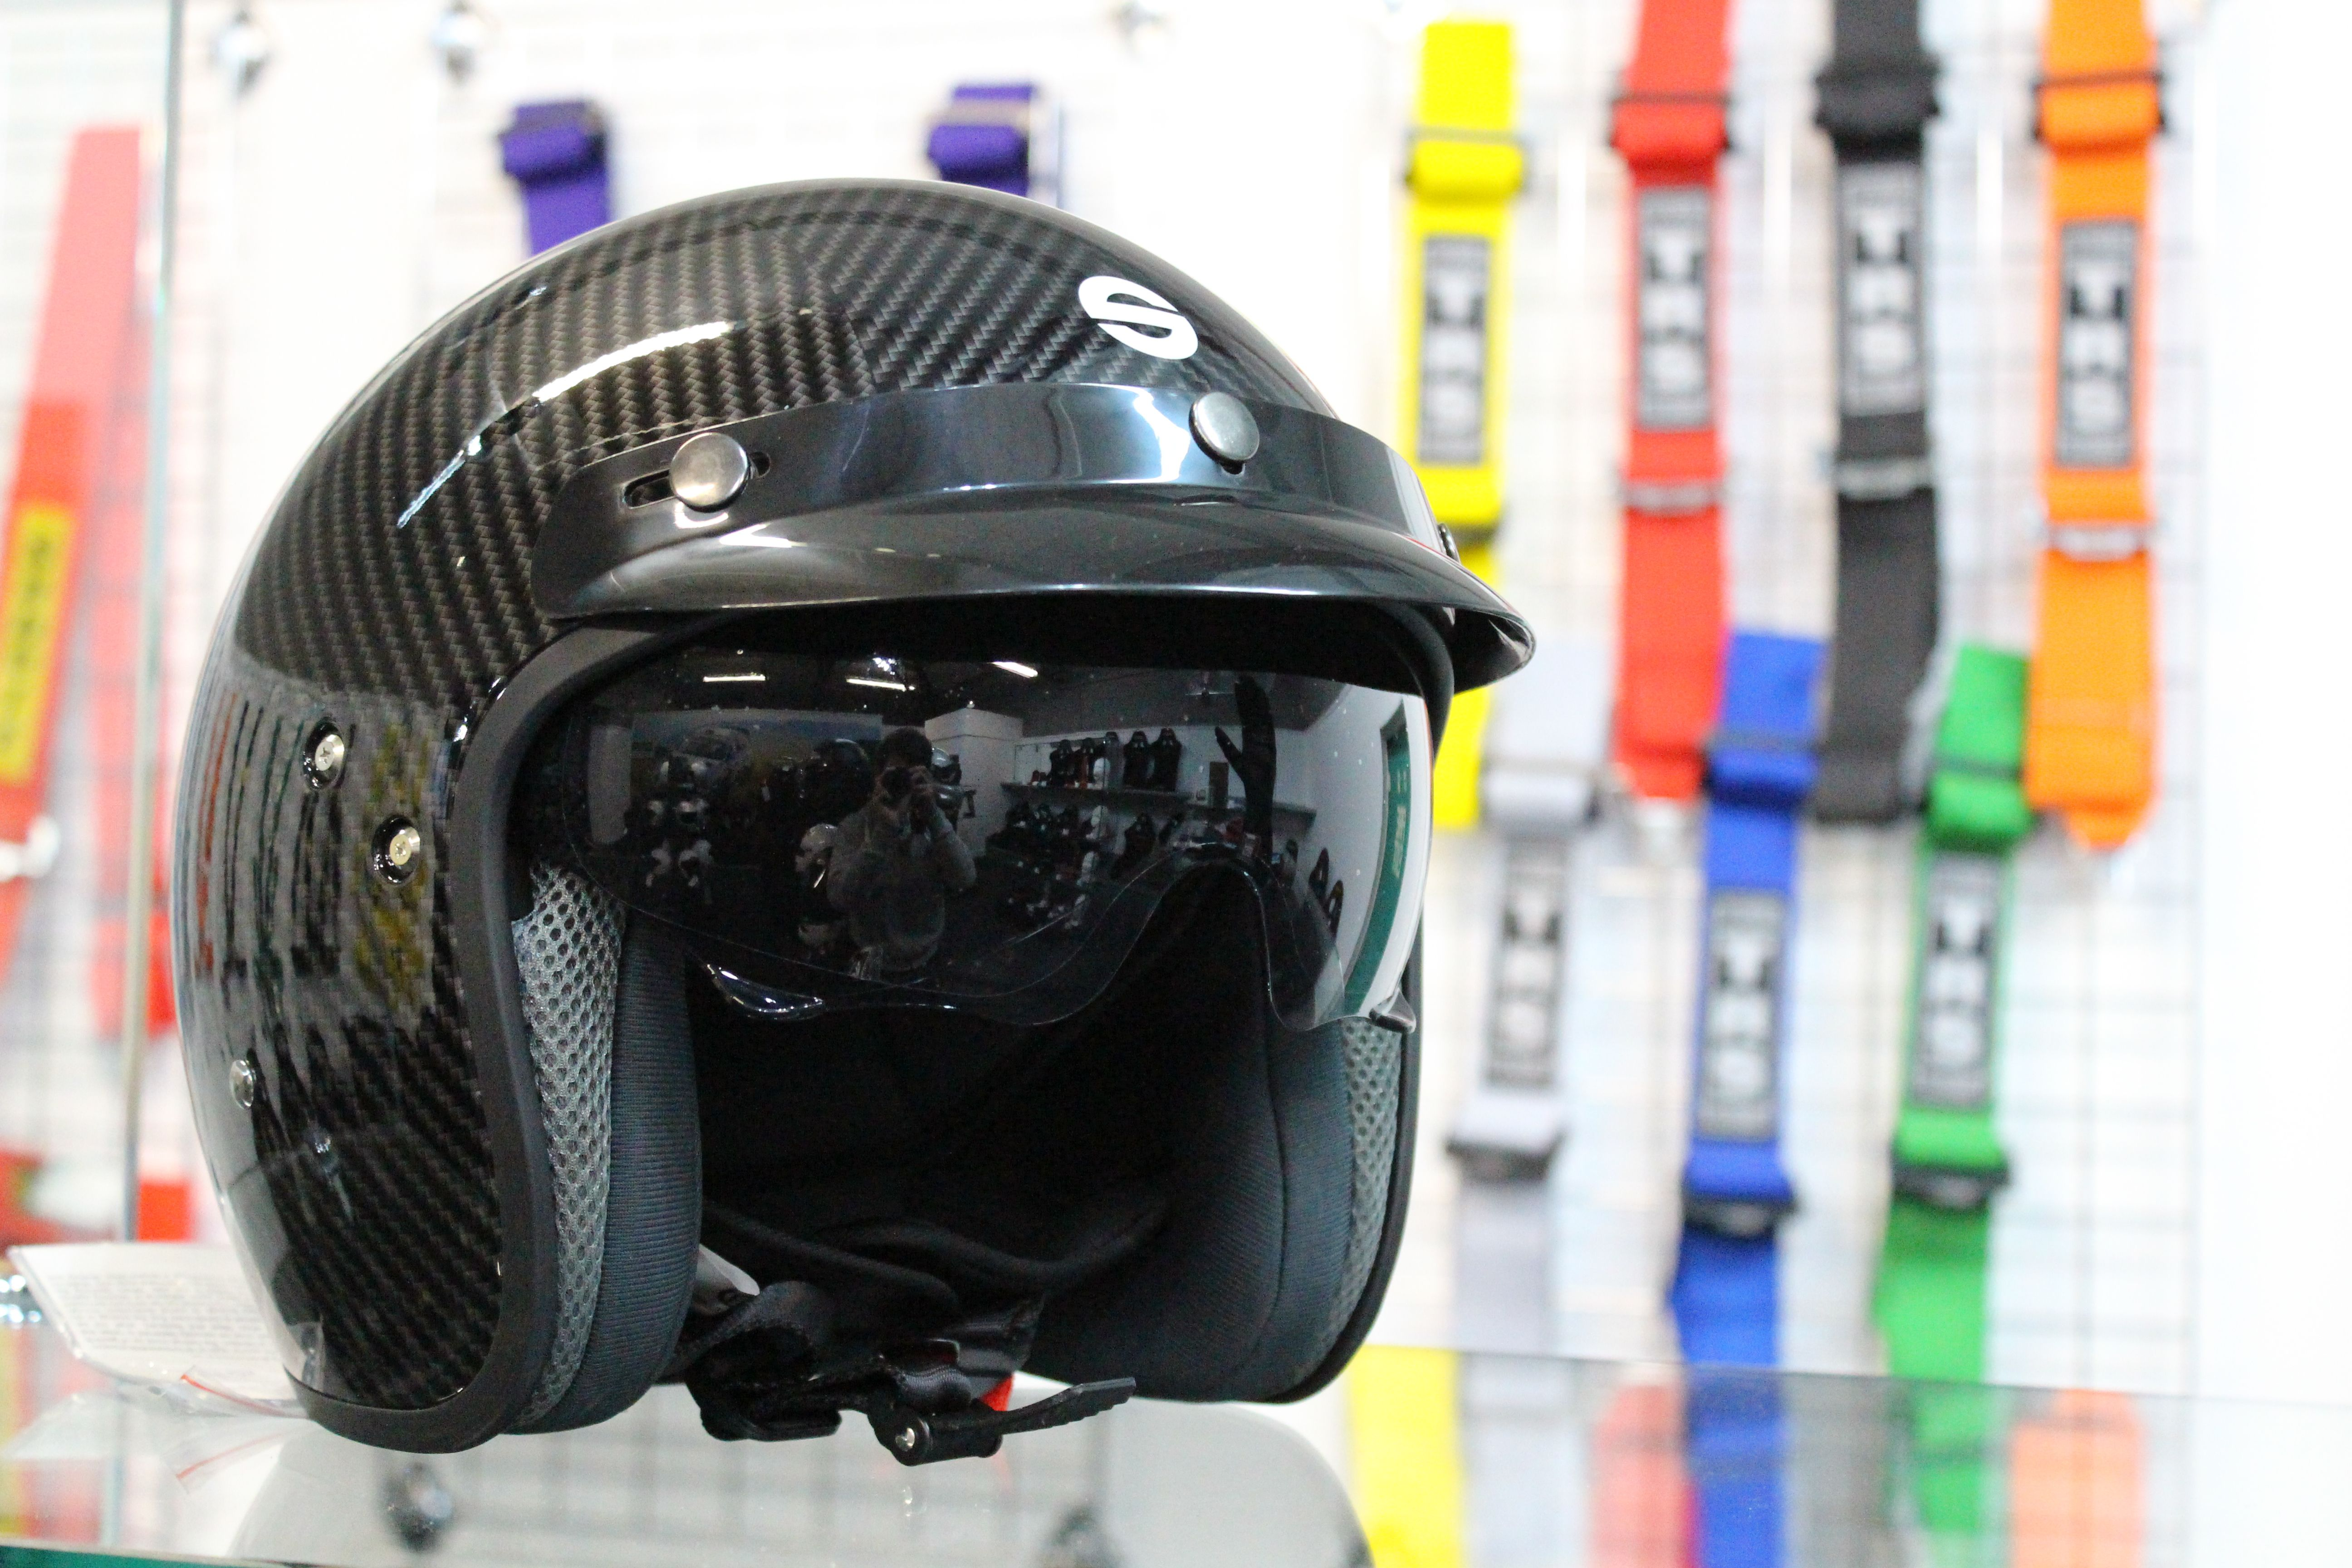 db604284 The all-new Sparco Club J1 Carbon Helmet is perfect for looking the part  when you're behind the wheel on a track day. For just £99.00, it's  phenomenal value ...